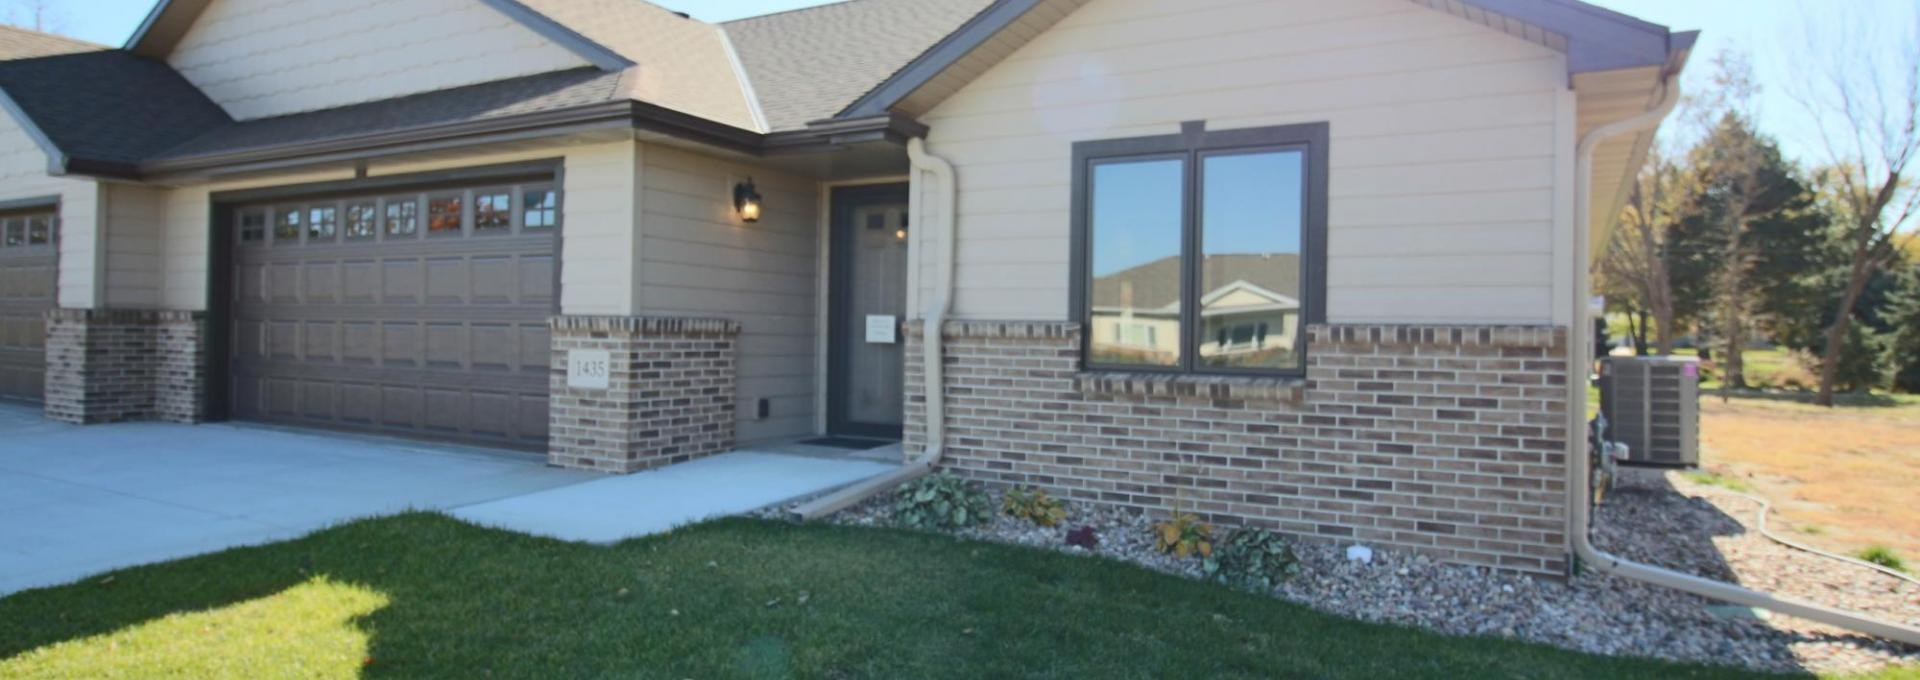 New construction townhome in Geneva, Ne., features partial brick cladding, arched roof line and spacious garage